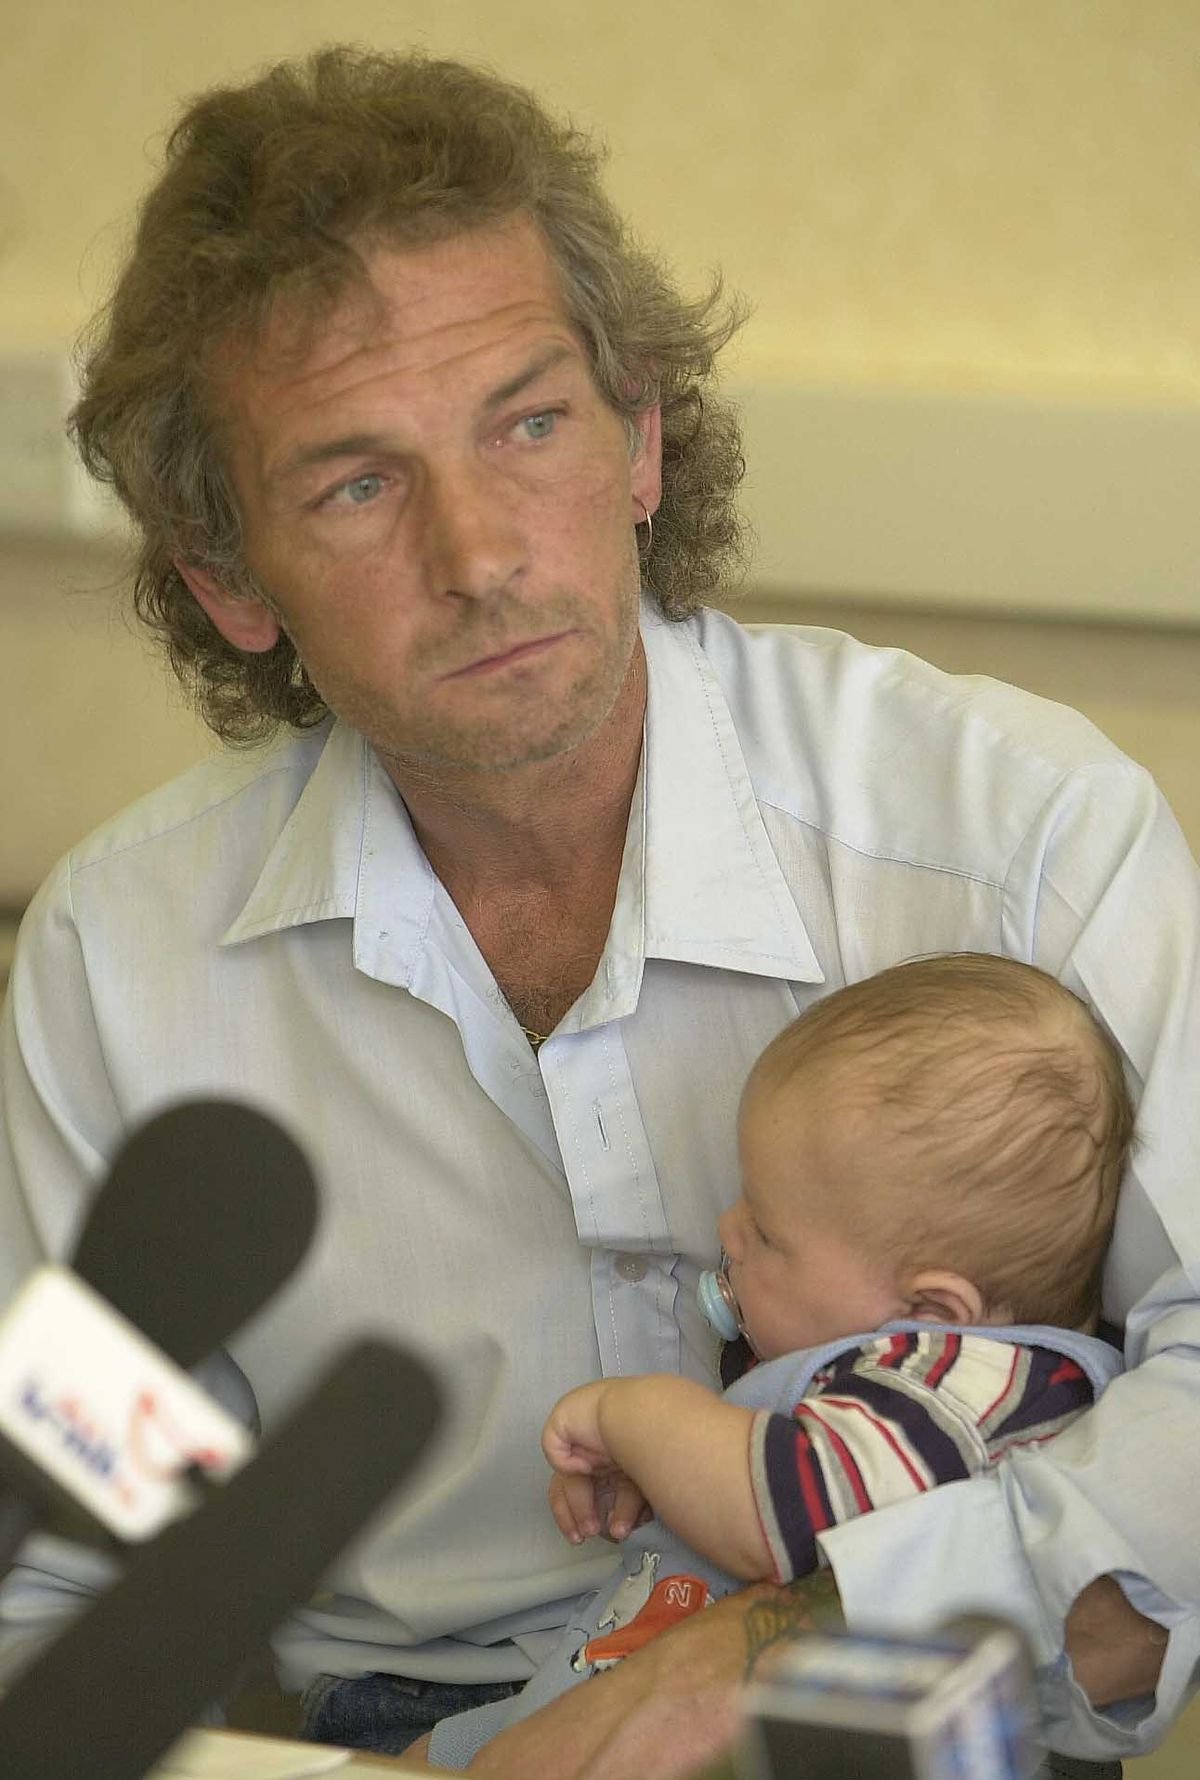 Natalie's father David Putt, holding her son, Rhys McCallum  at a press conference in 2003